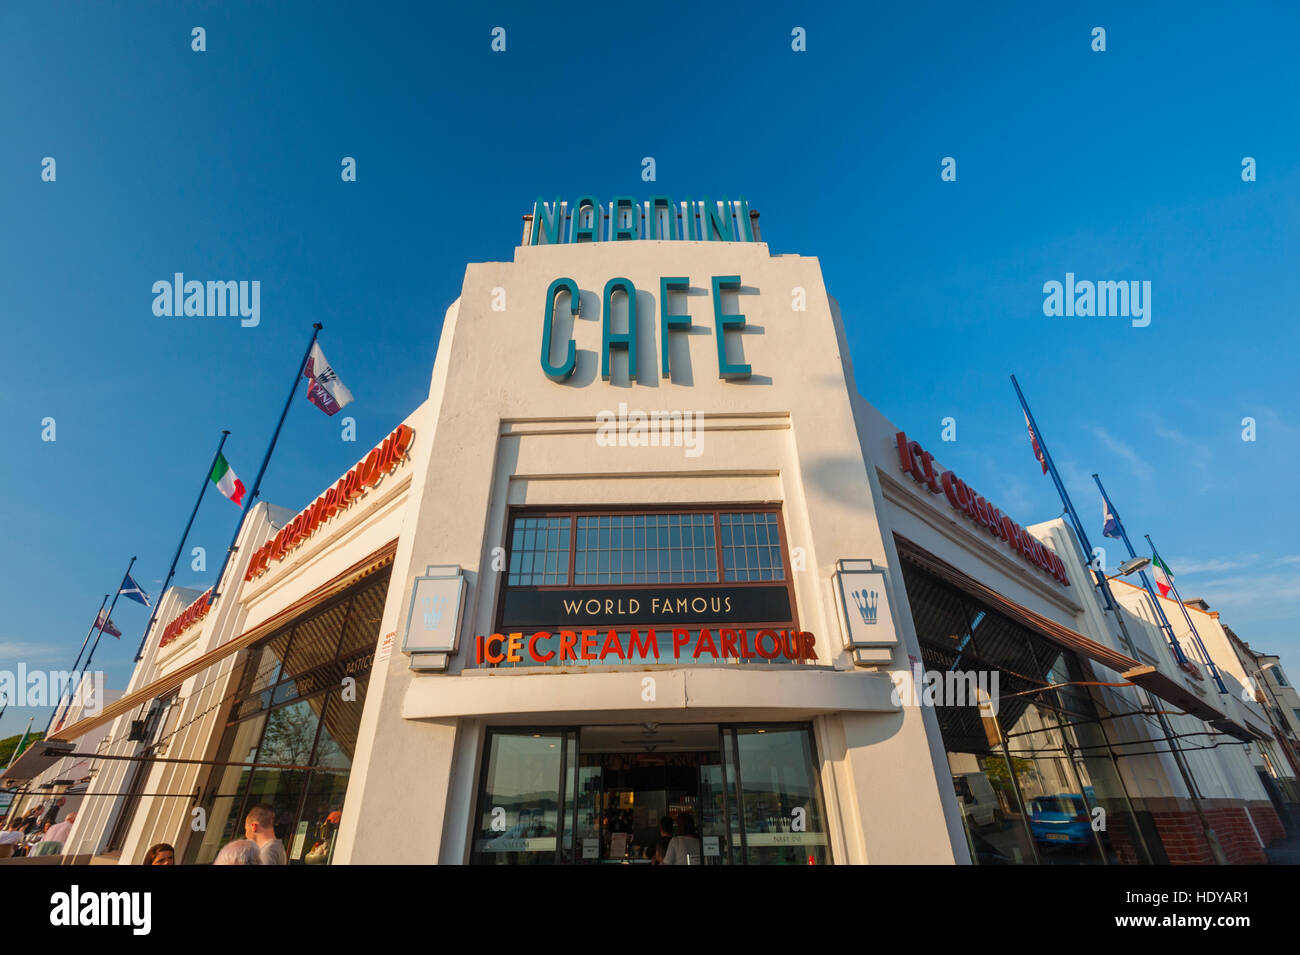 The Art Deco frontage of Nardinis cafe in Largs Ayrshire, Scotland. - Stock Image